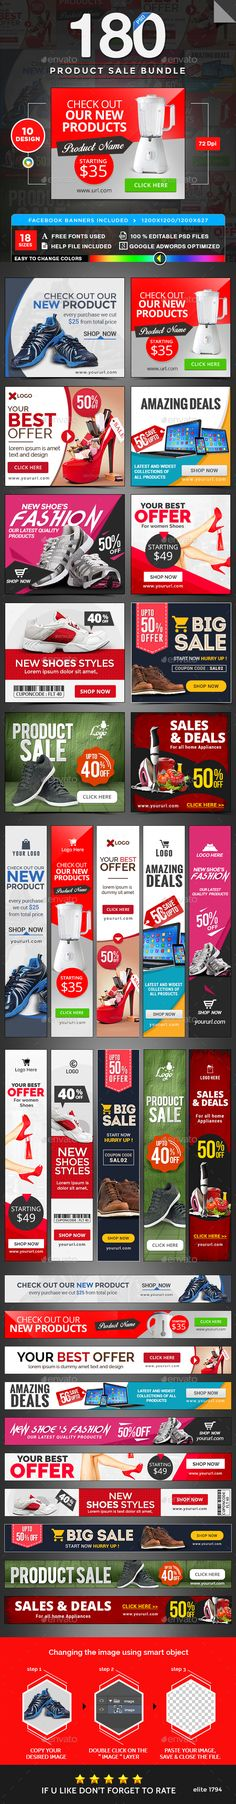 Product Sale Banners Design Template Bundle - 10 Sets 180 Banners - Banners & Ads Web Elements Template PSD. Download here: https://graphicriver.net/item/product-sale-banners-bundle-10-sets-180-banners/17741058?s_rank=10&ref=yinkira